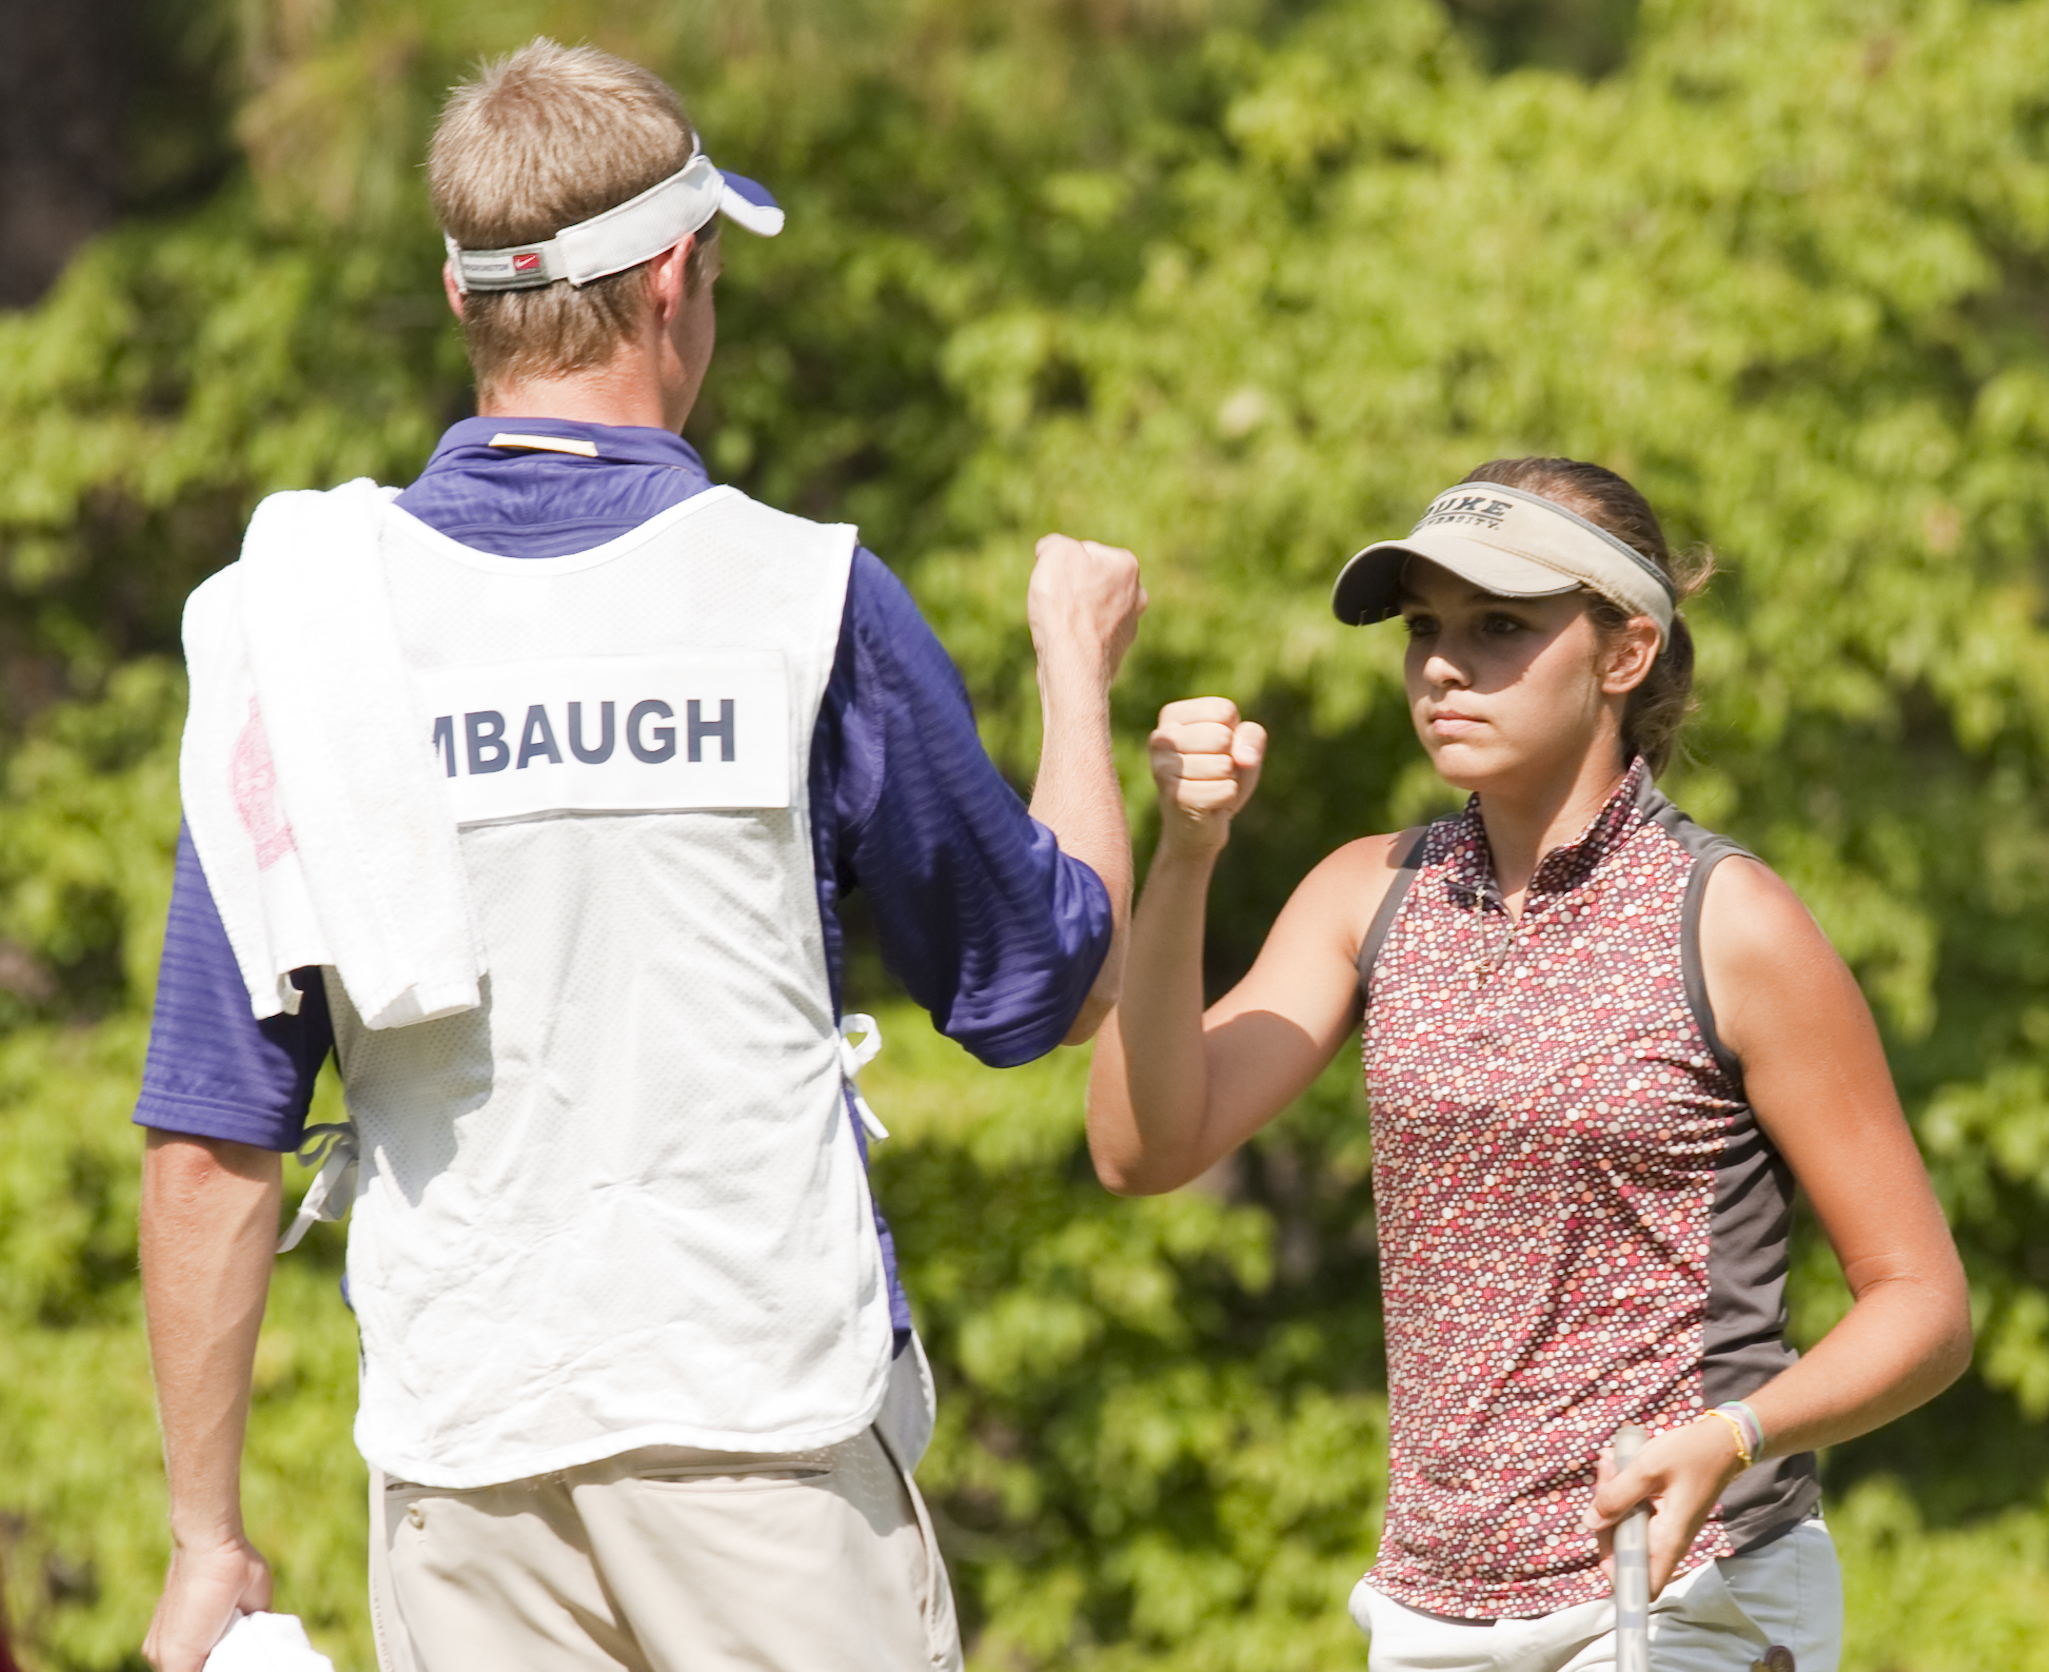 Katelyn Dambaugh during the championship match at the U.S. Girls' Junior.